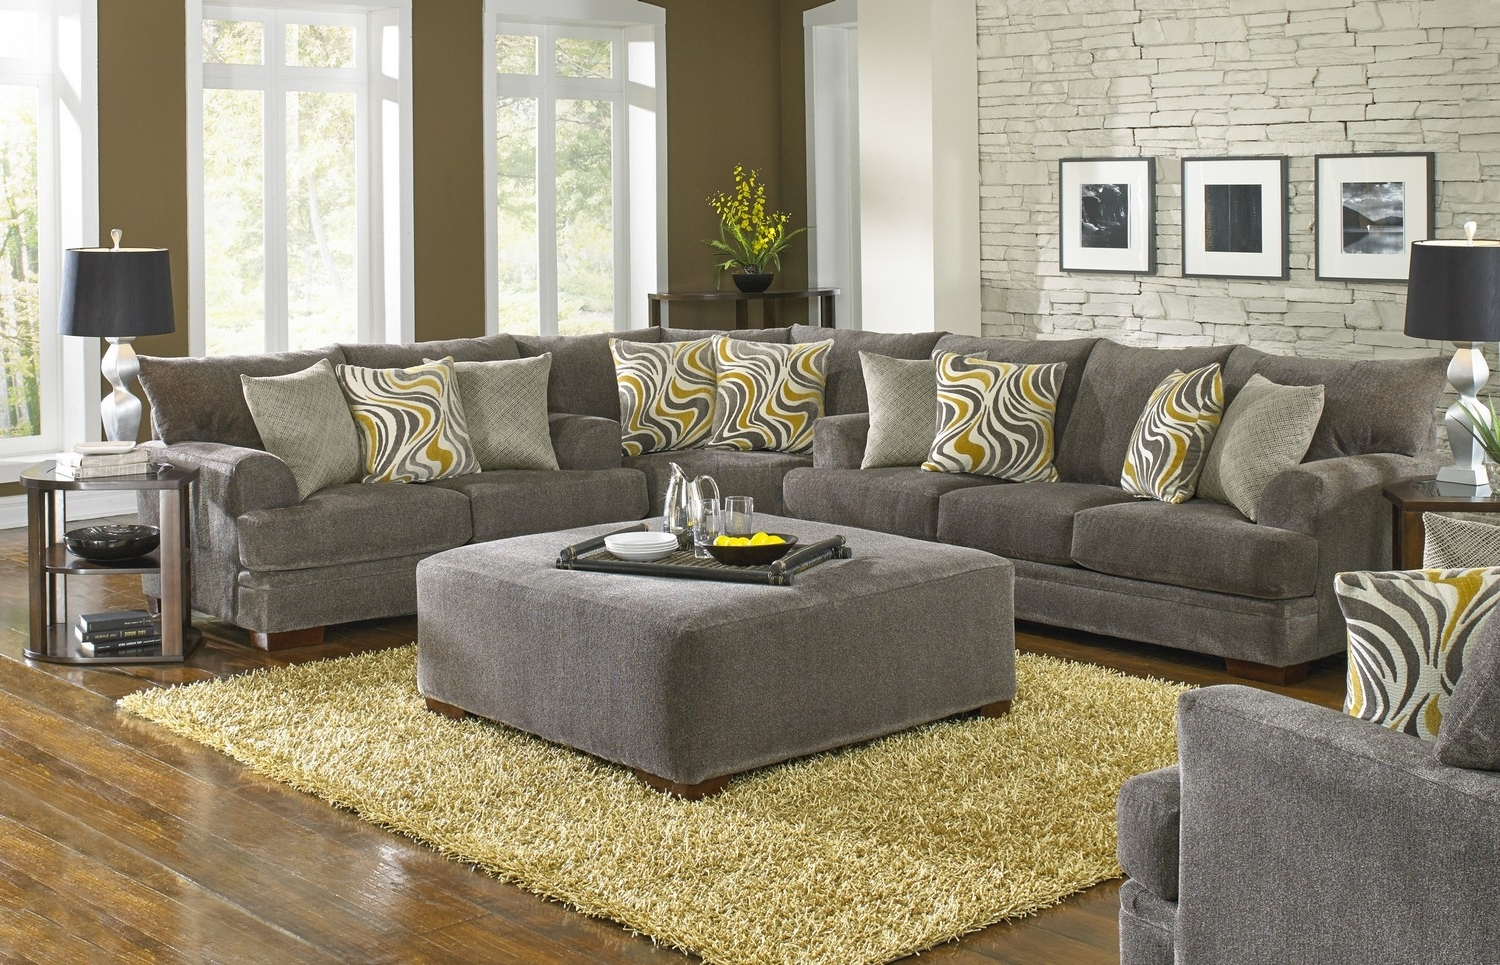 Jackson Crompton Sofa Sectional Sofa Set – Pewter Jf 4462 Sect Set For Well Known Dayton Ohio Sectional Sofas (View 11 of 20)